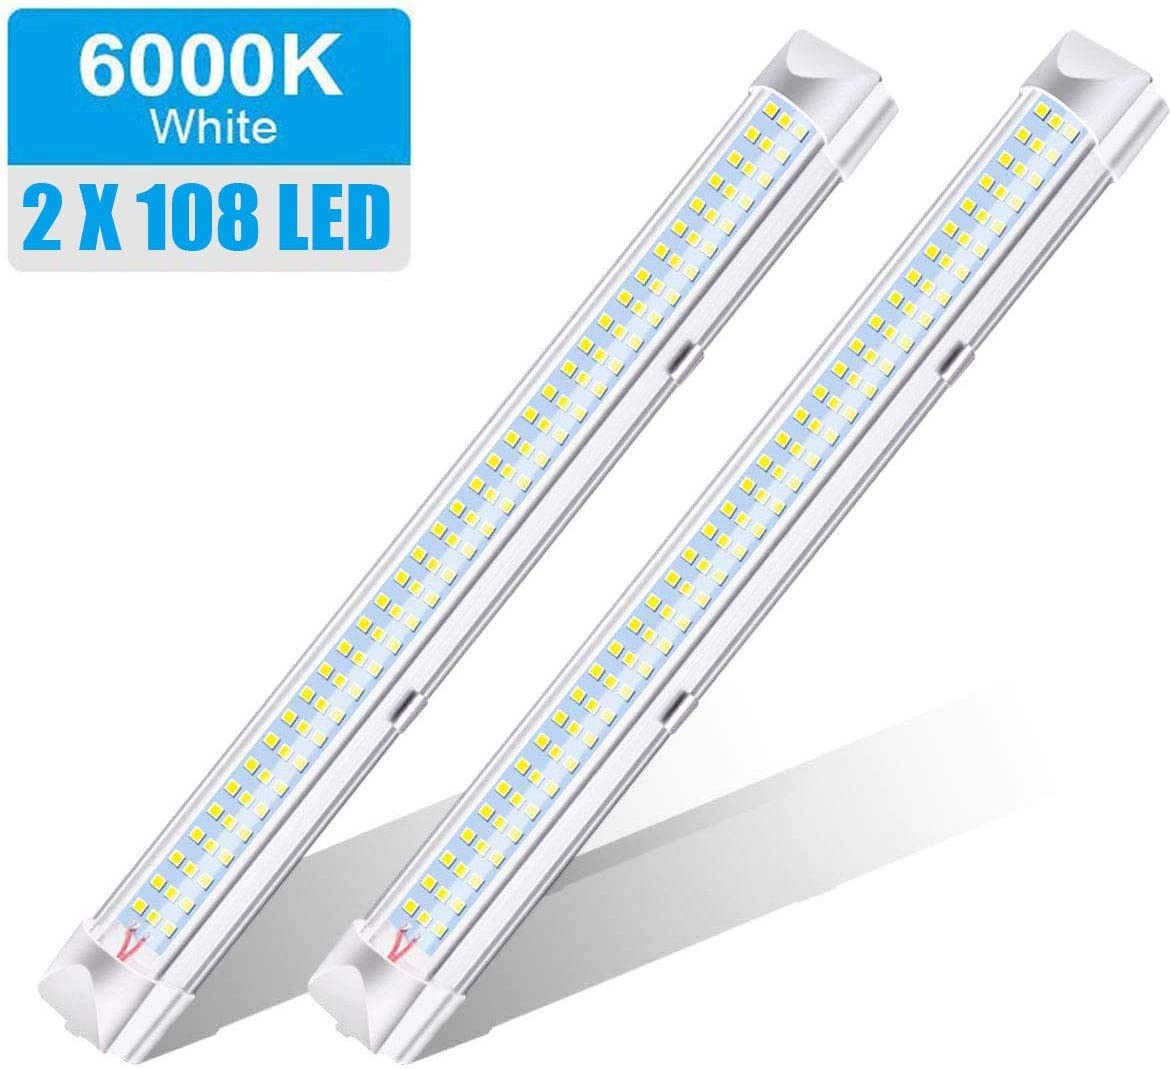 ROYFACC 108 LED Interior Light Lighting Strip Universal Bar Spring new work one after another Lamp New arrival